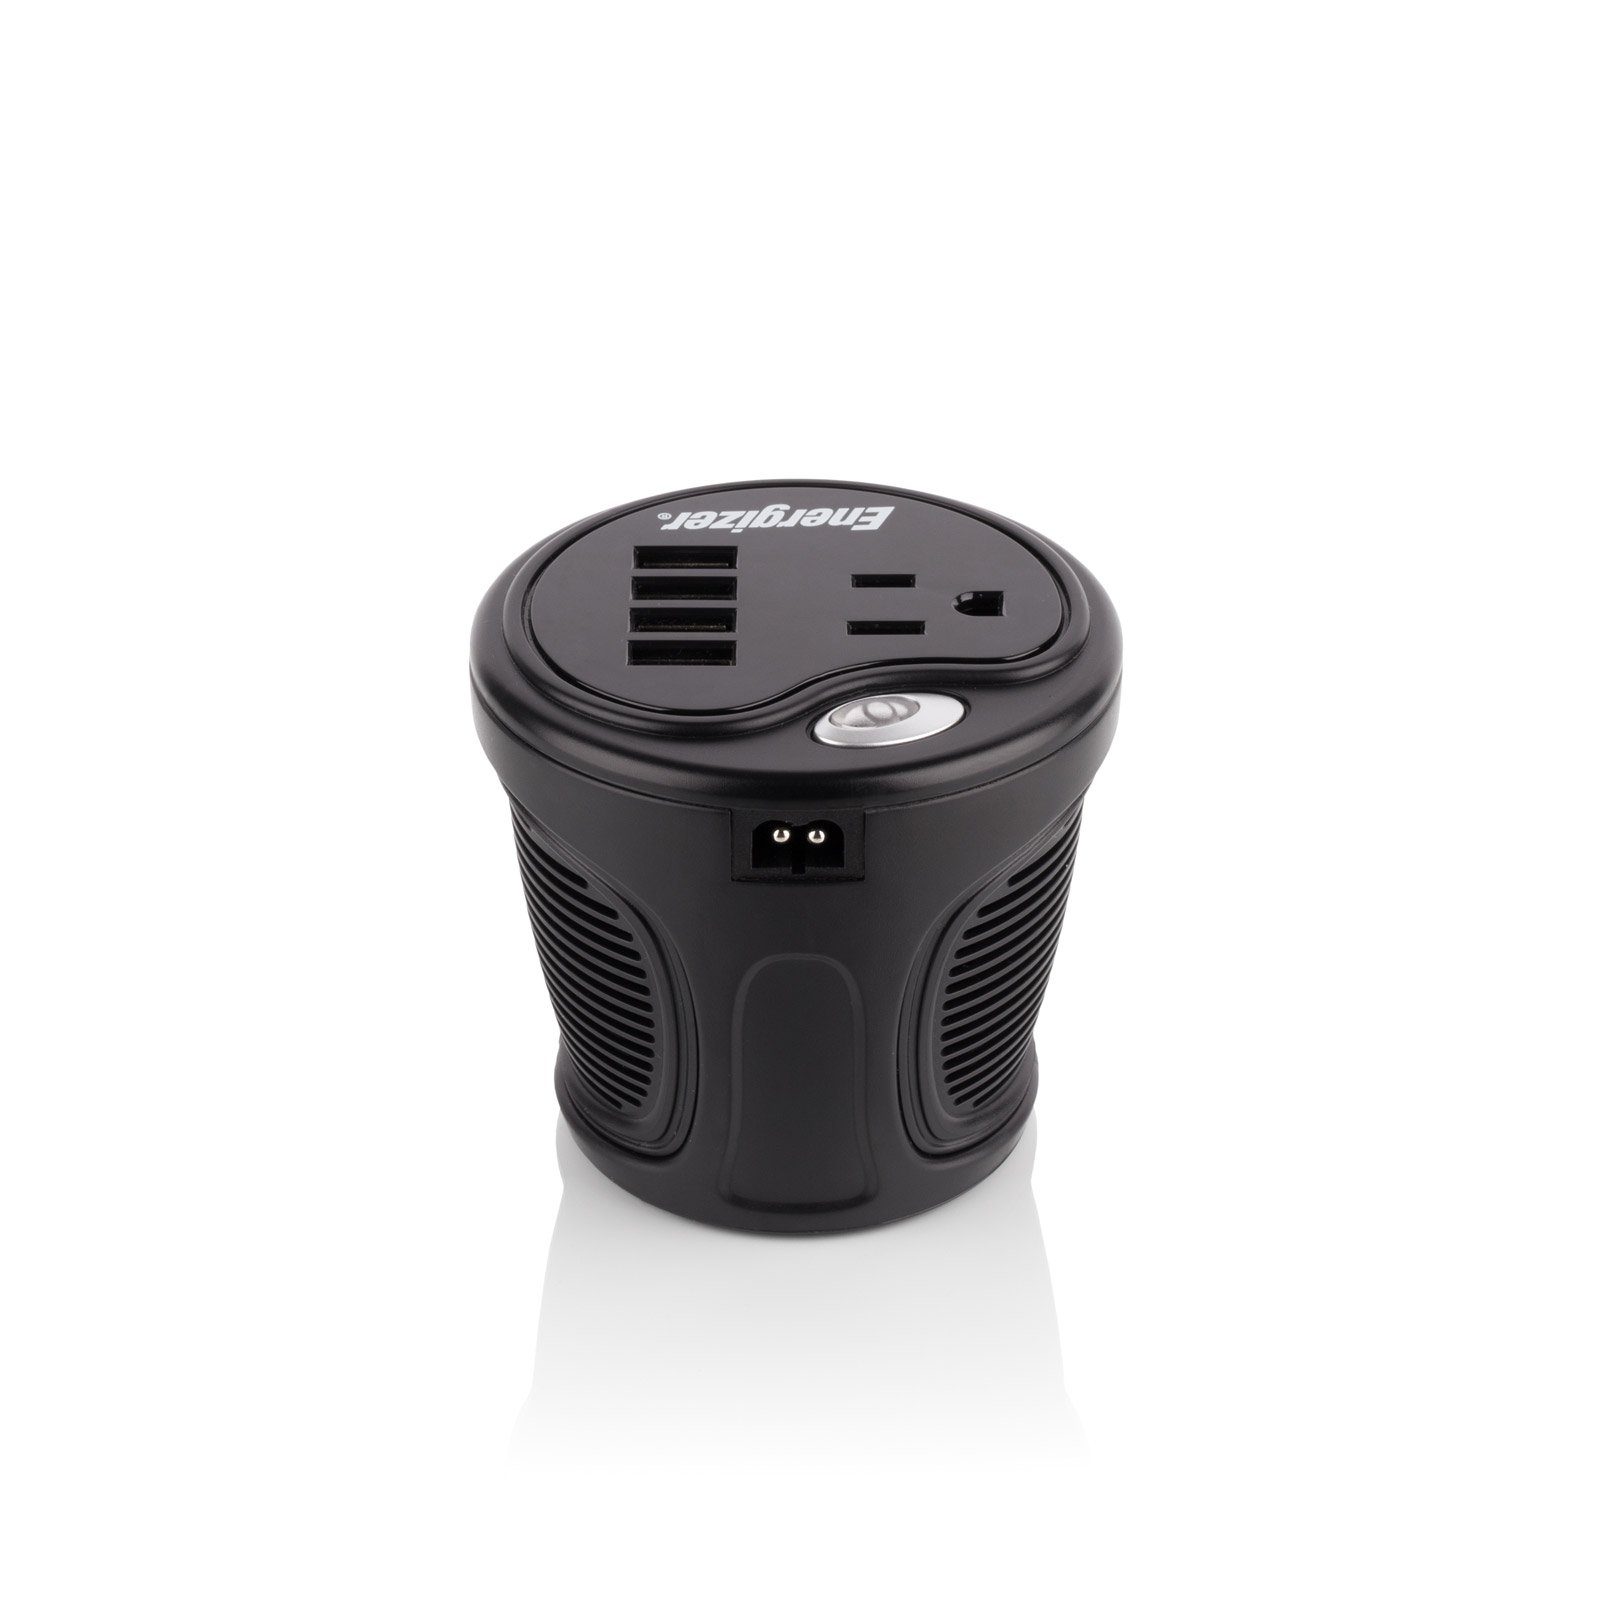 ENERGIZER 120W Cup Inverter 12V DC cigarette lighter to 120V AC to power laptop notebook & more w/4 USB ports 2.1A shared compatible with iPad & more by Energizer (Image #4)